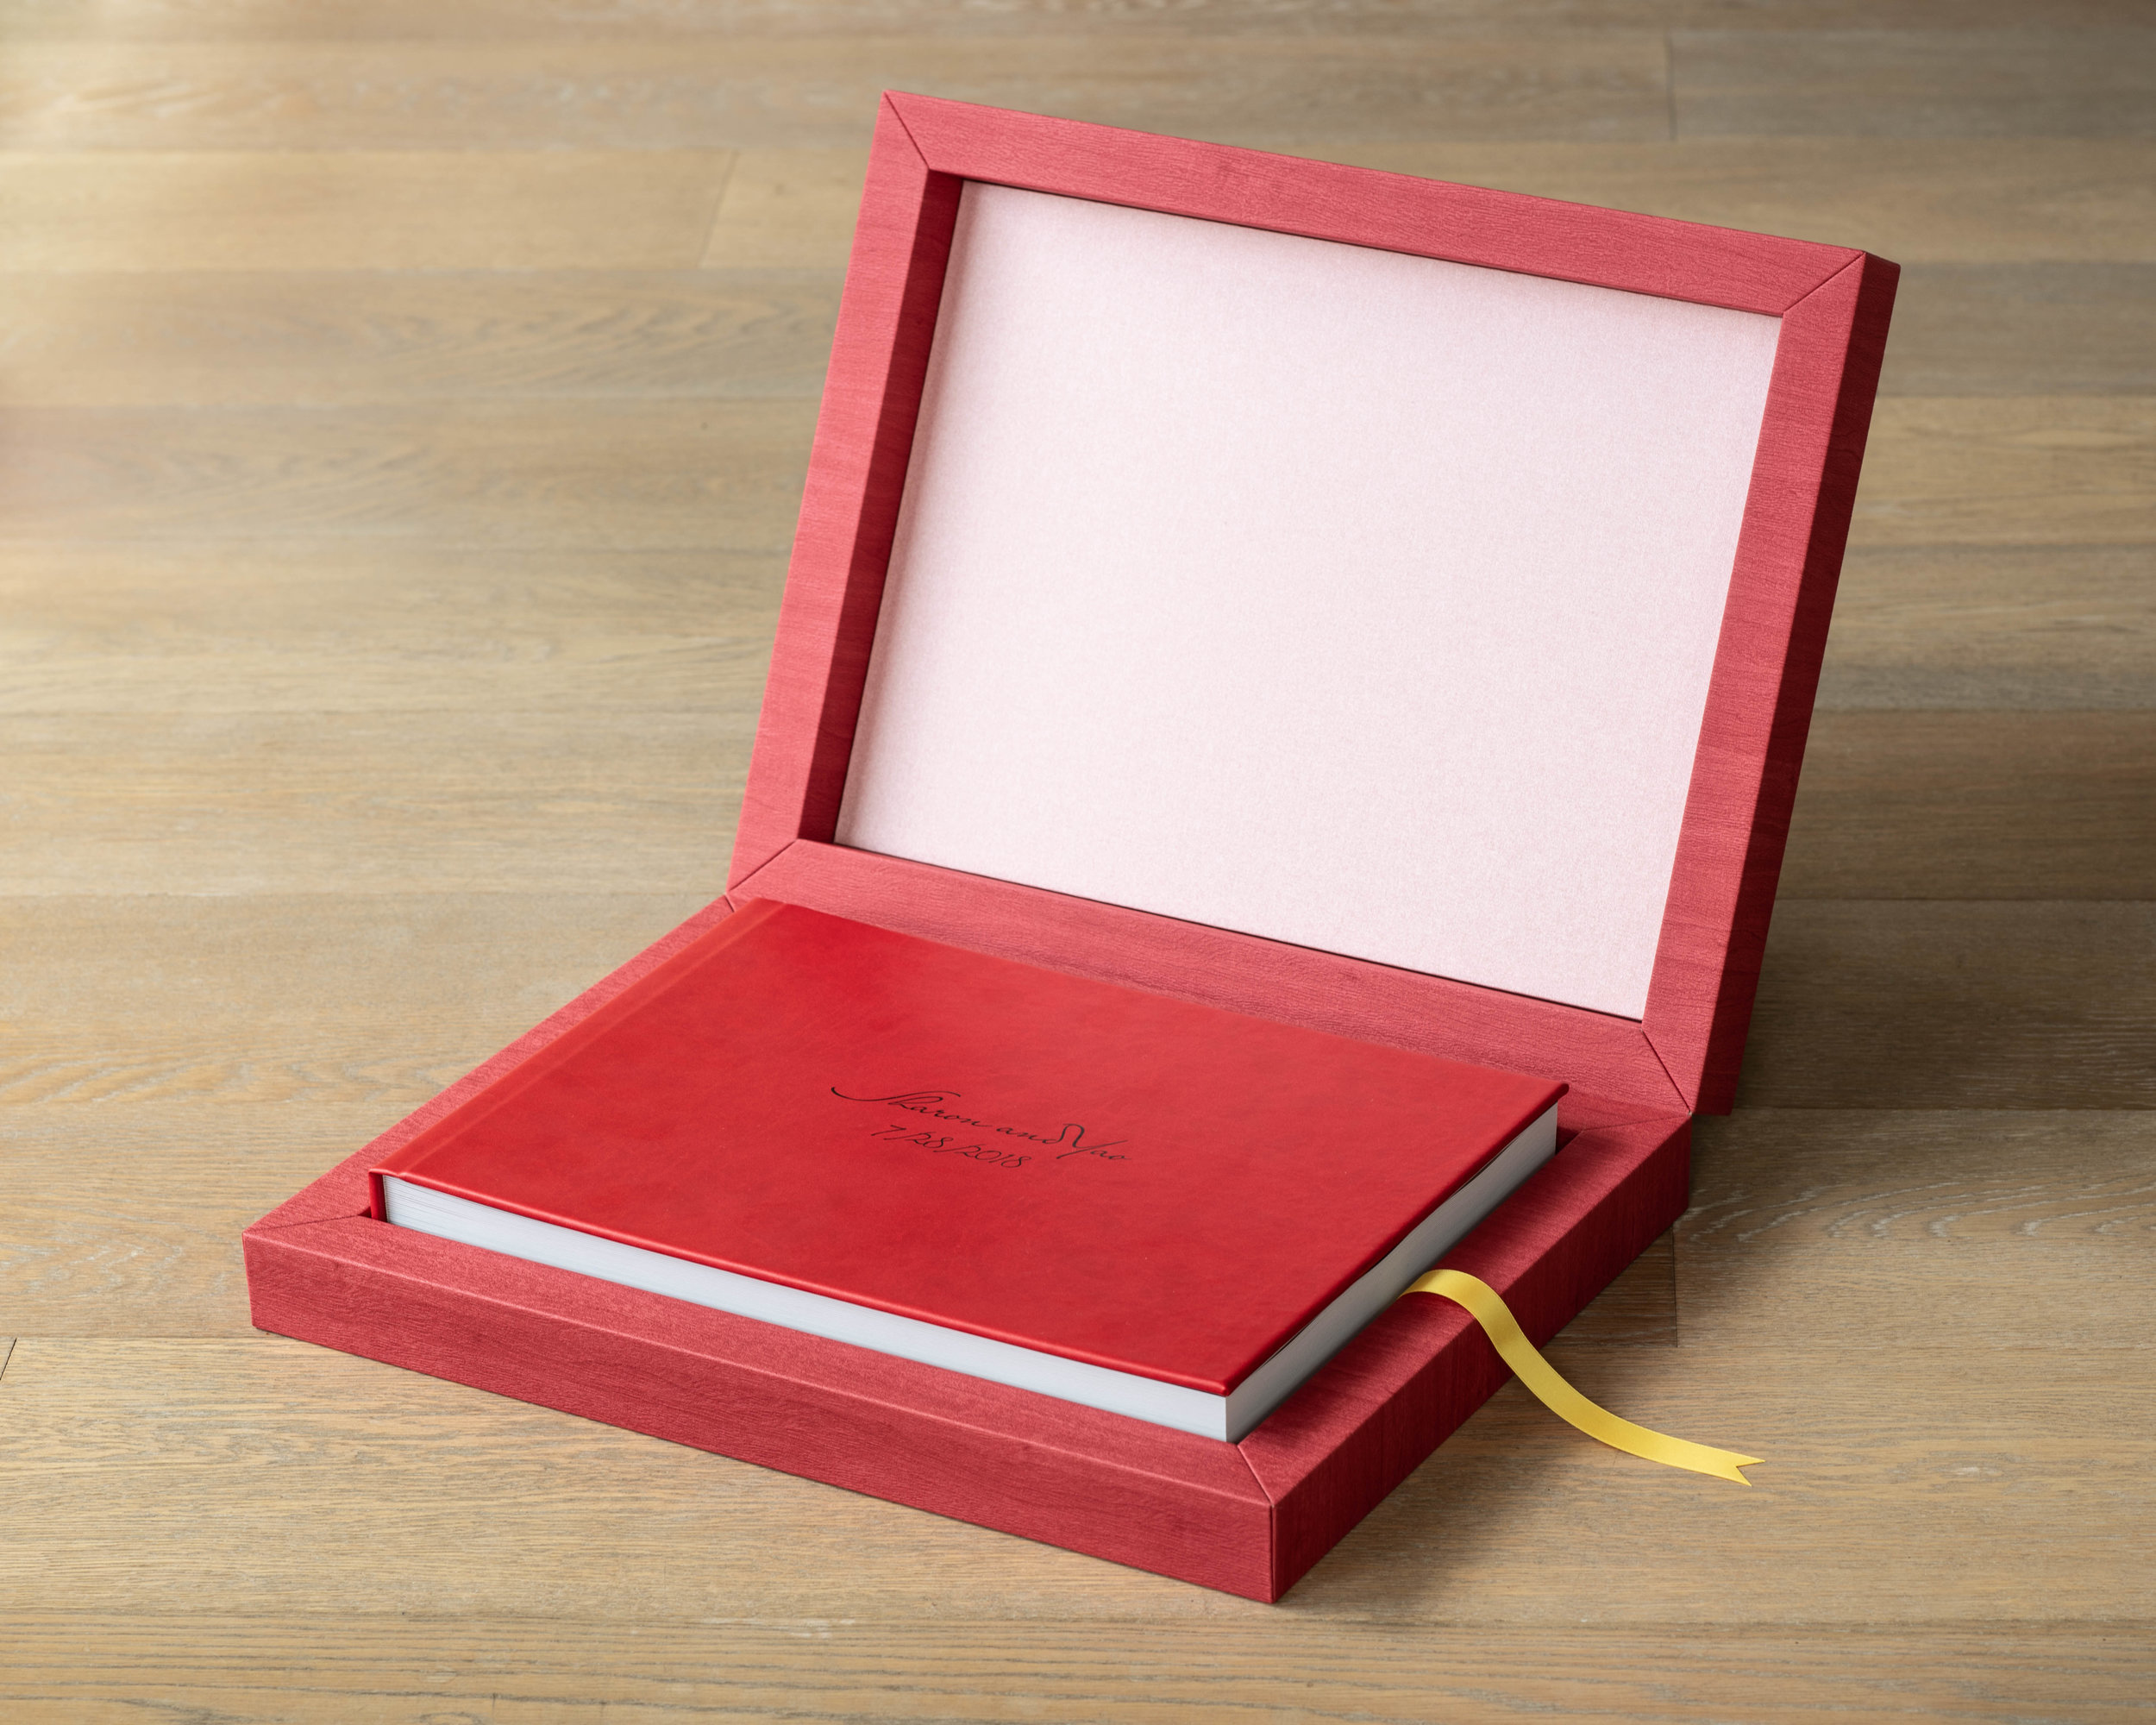 Leather or Linen book cover and enclosure box, with opening ribbon color choice -